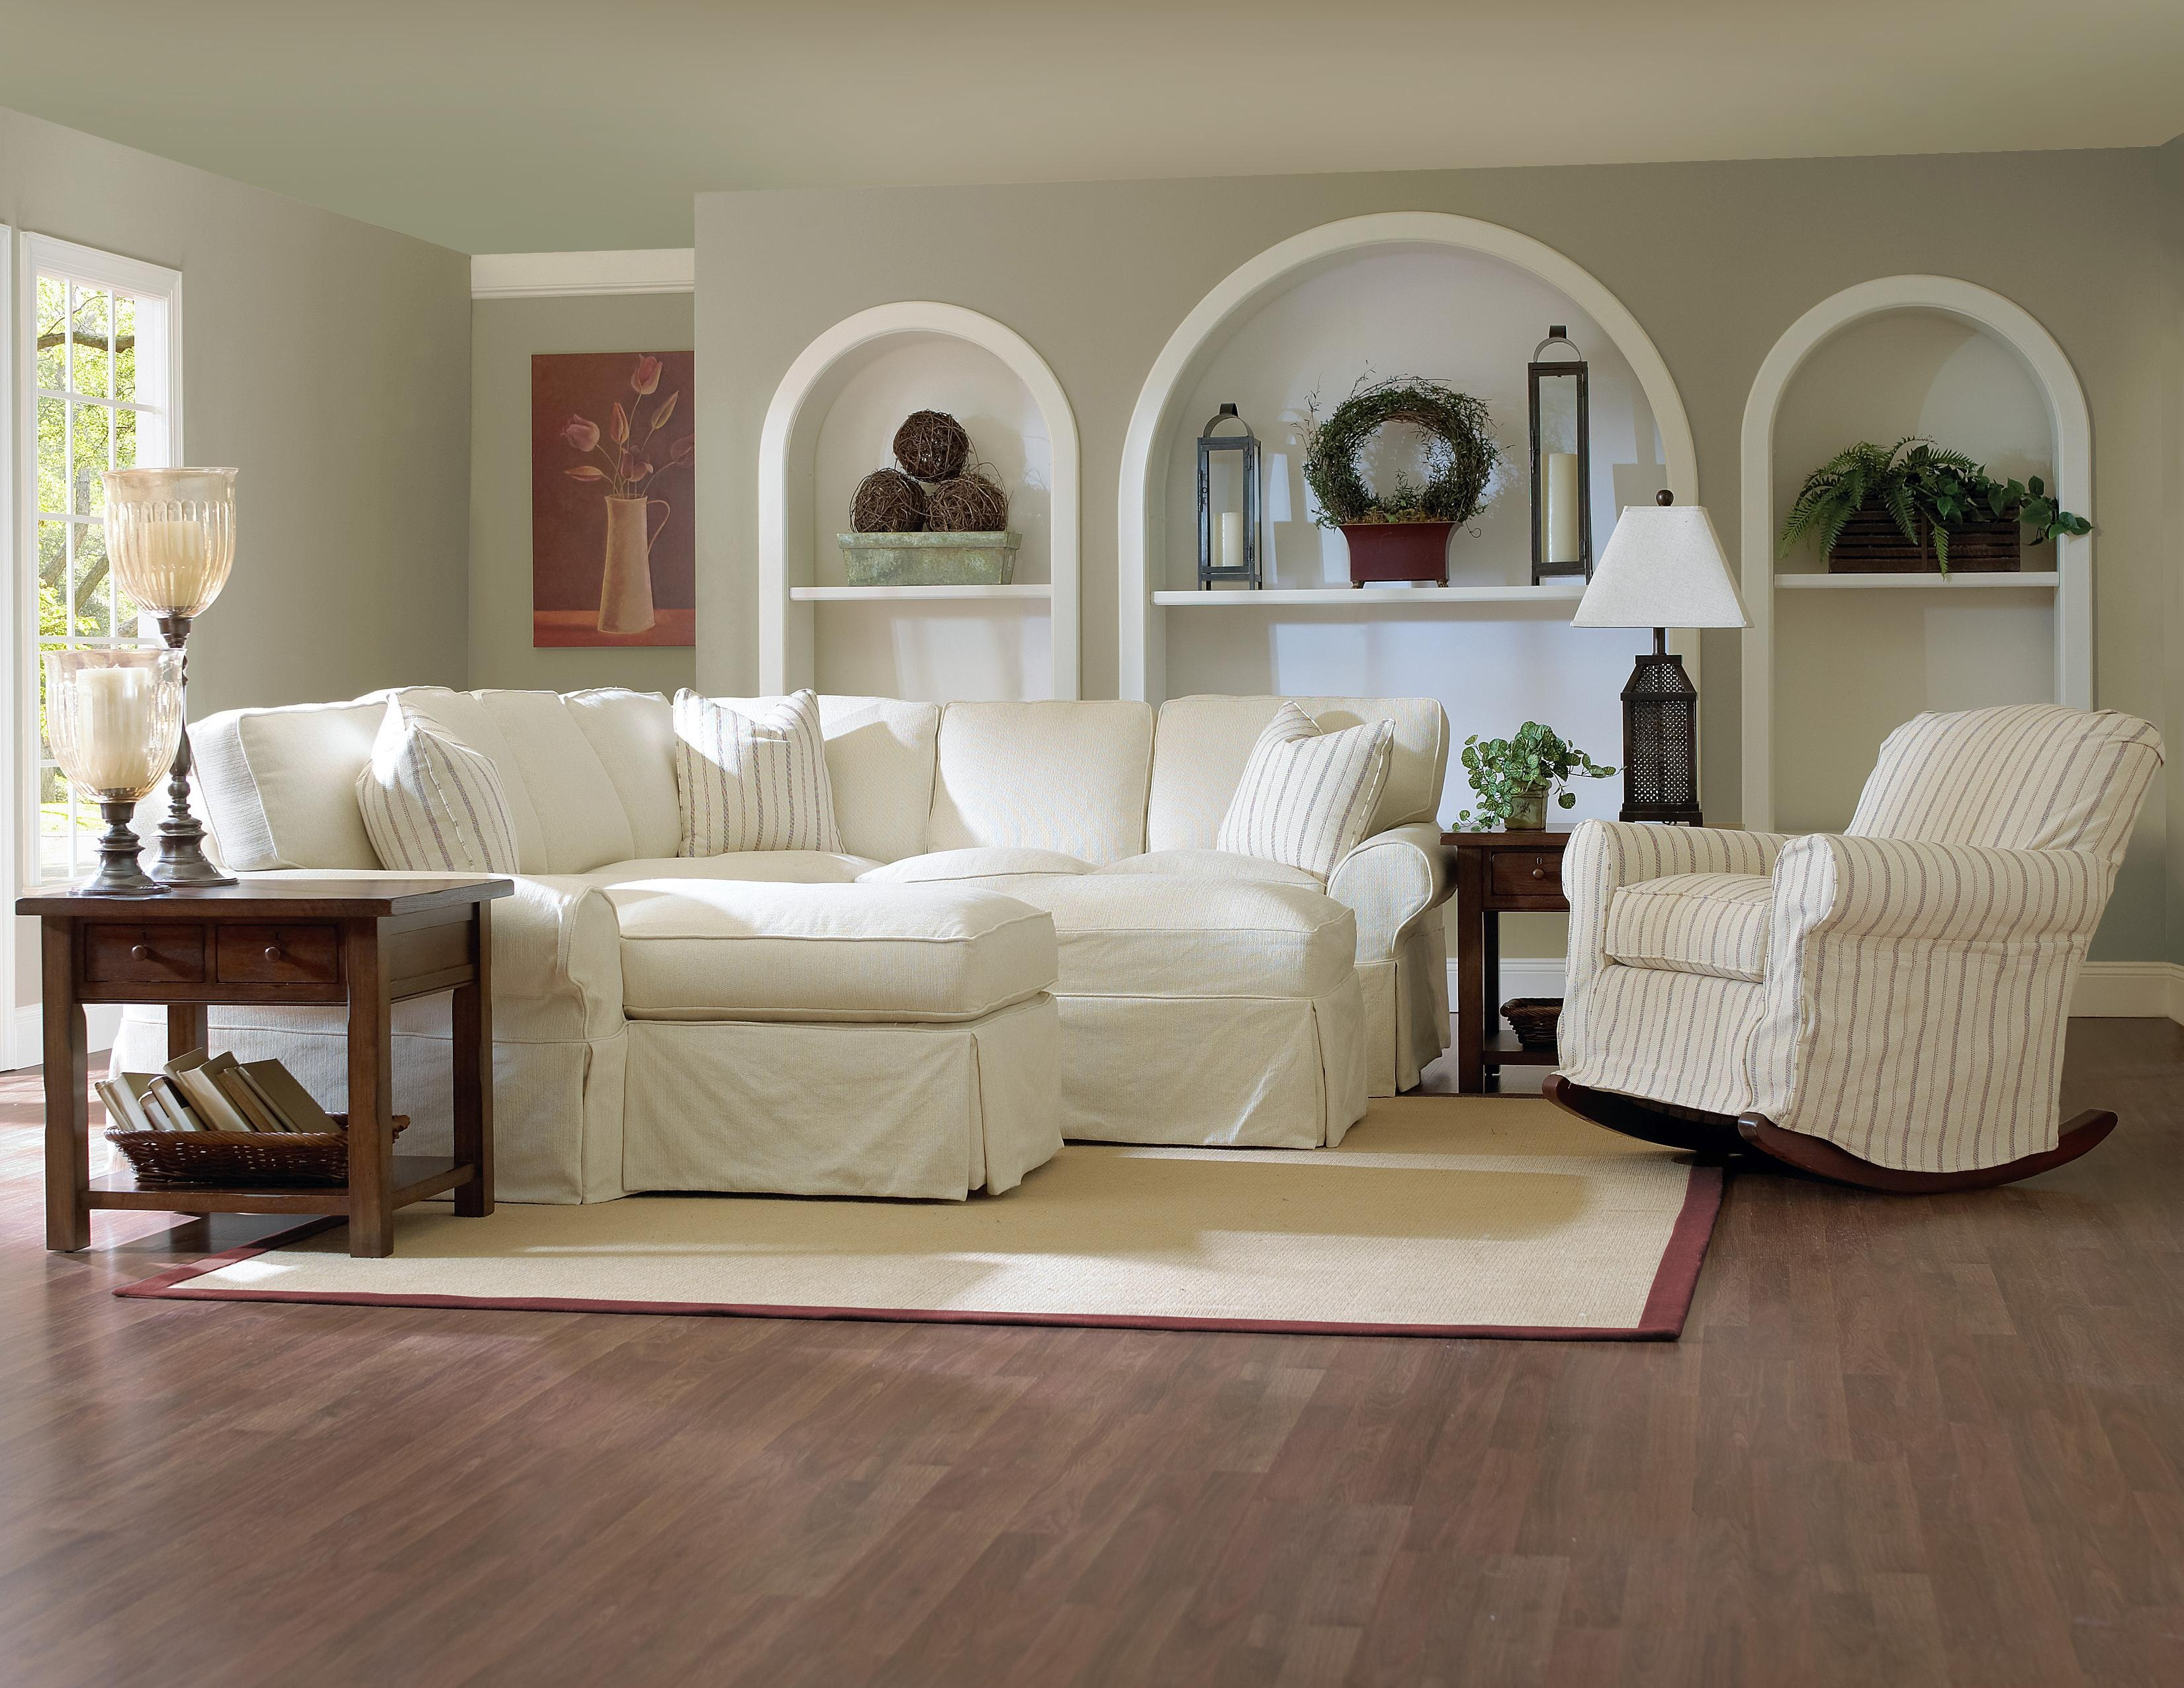 Furniture: Room With A Unique Richness And Sumptuous Softness With Within Pottery Barn Chair Slipcovers (Image 4 of 20)